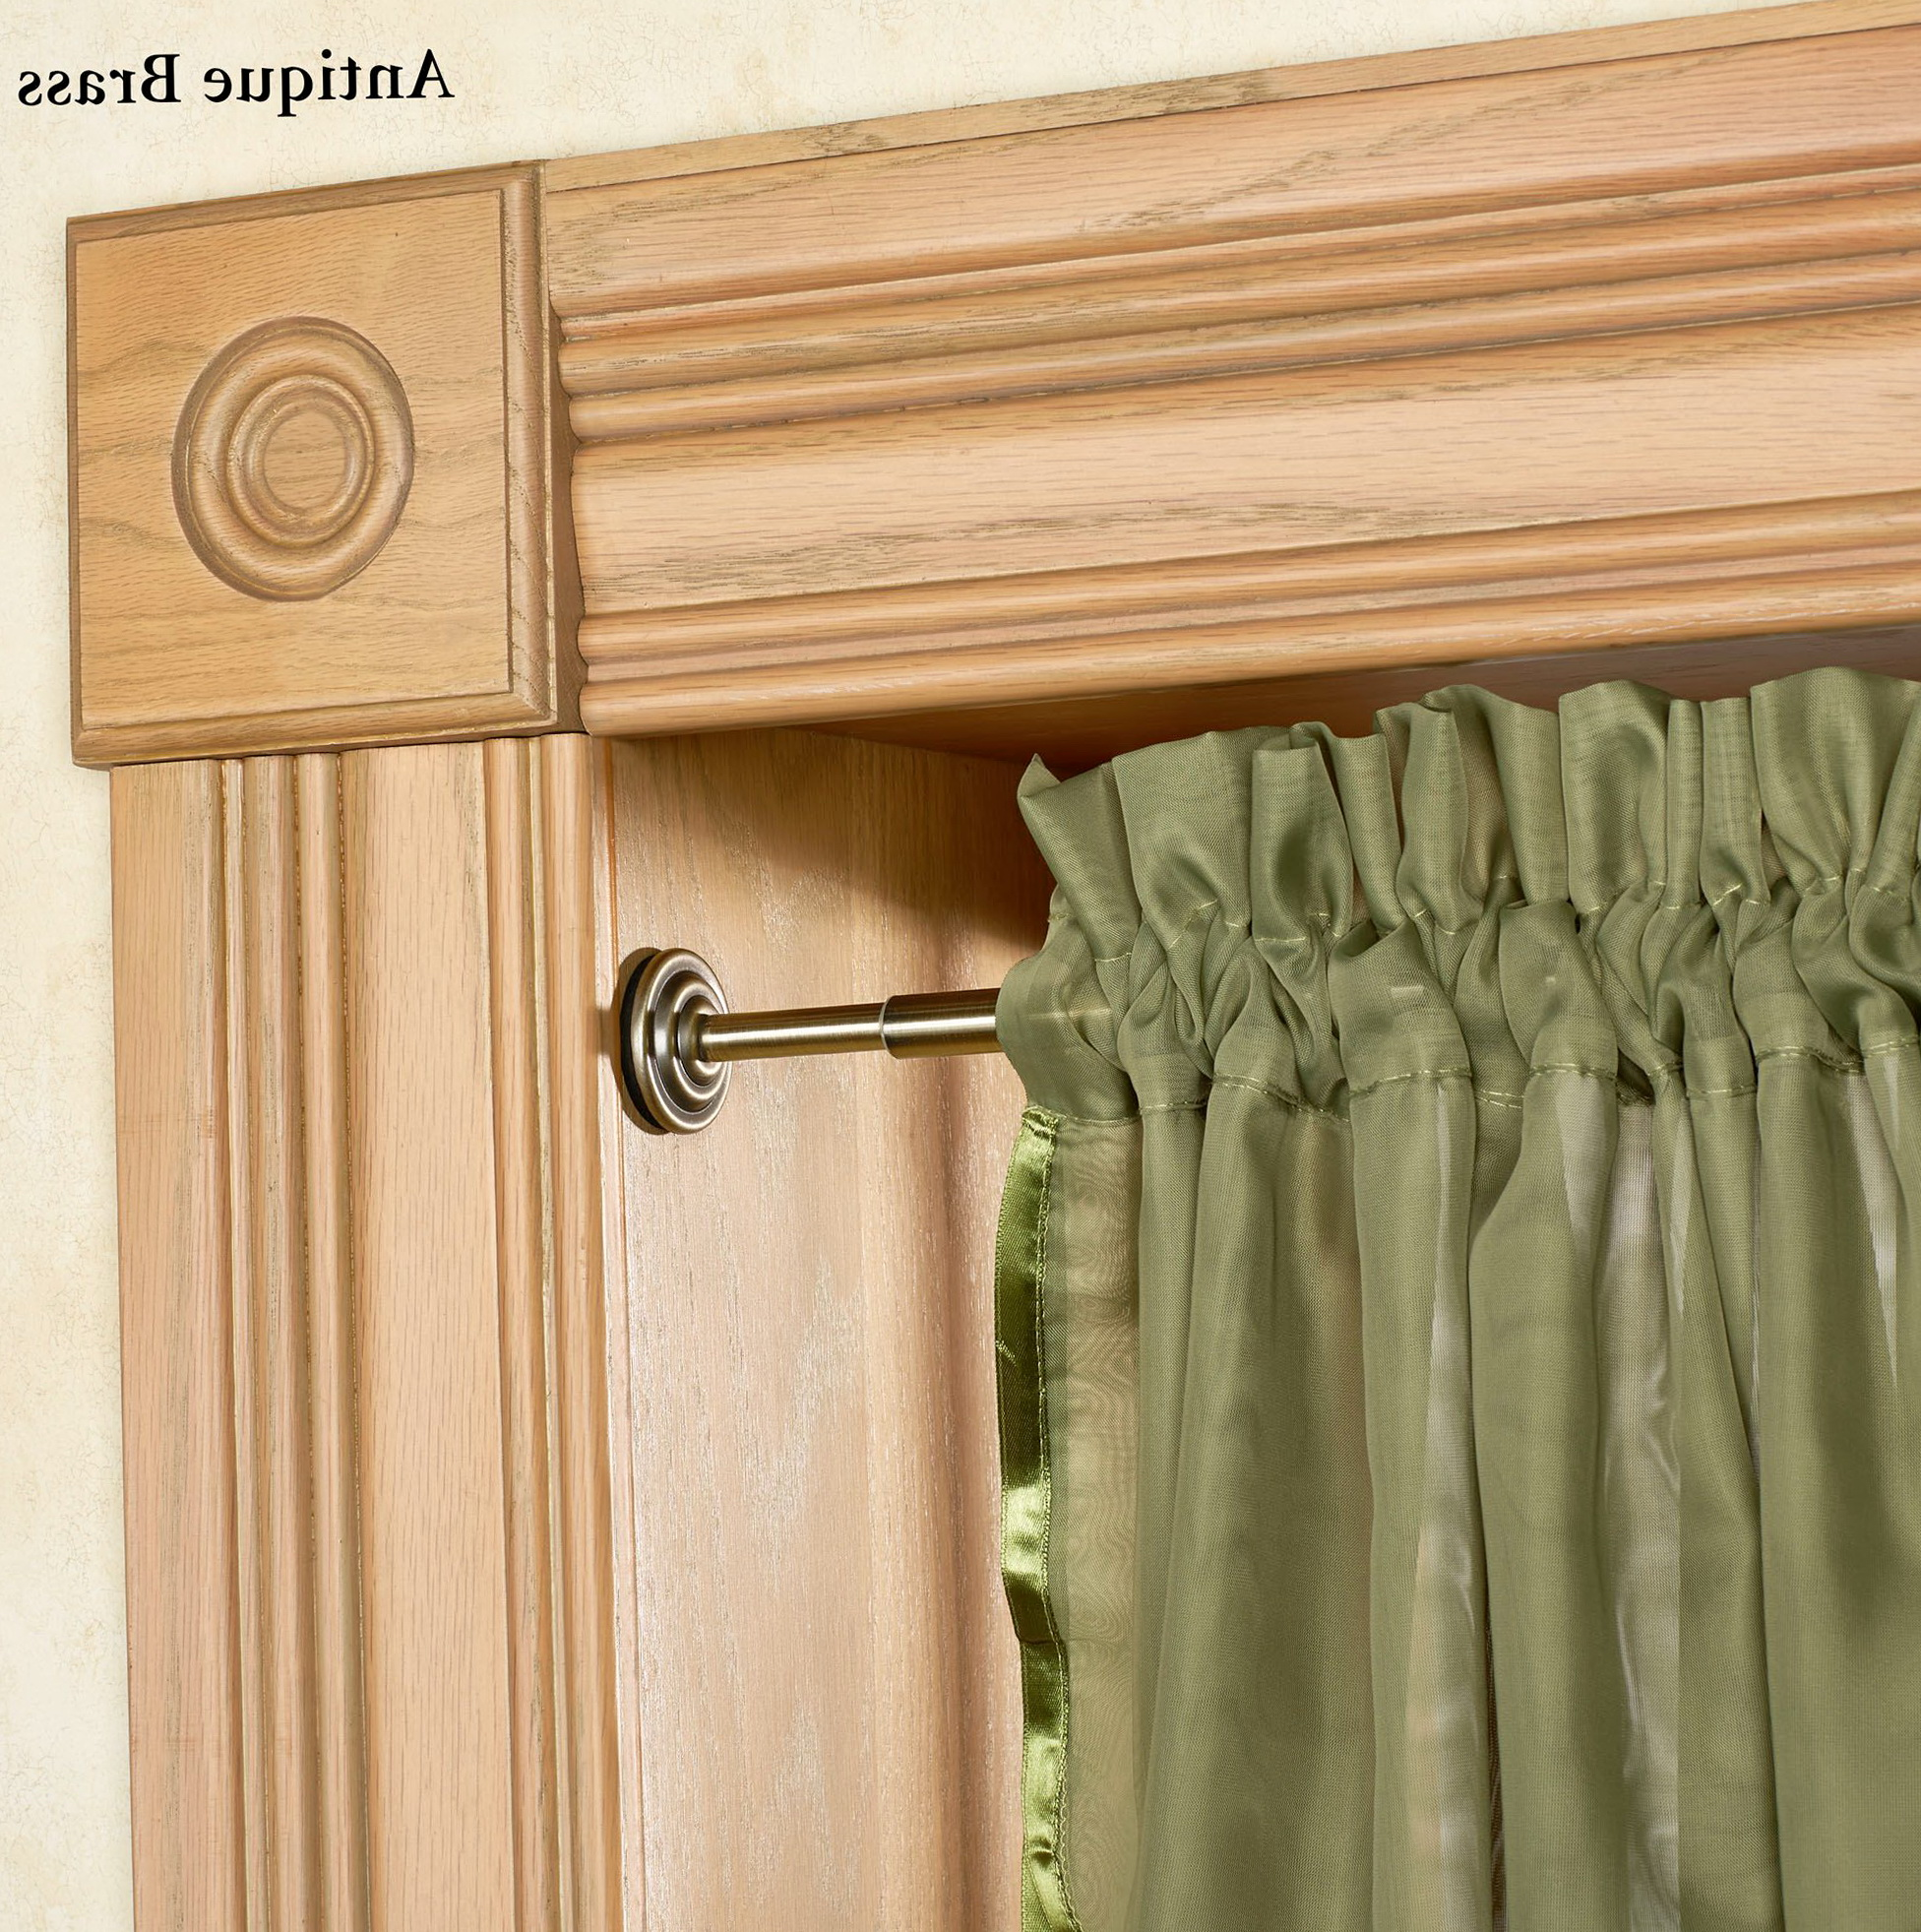 Spring Tension Curtain Rod Instructions Home Design Ideas